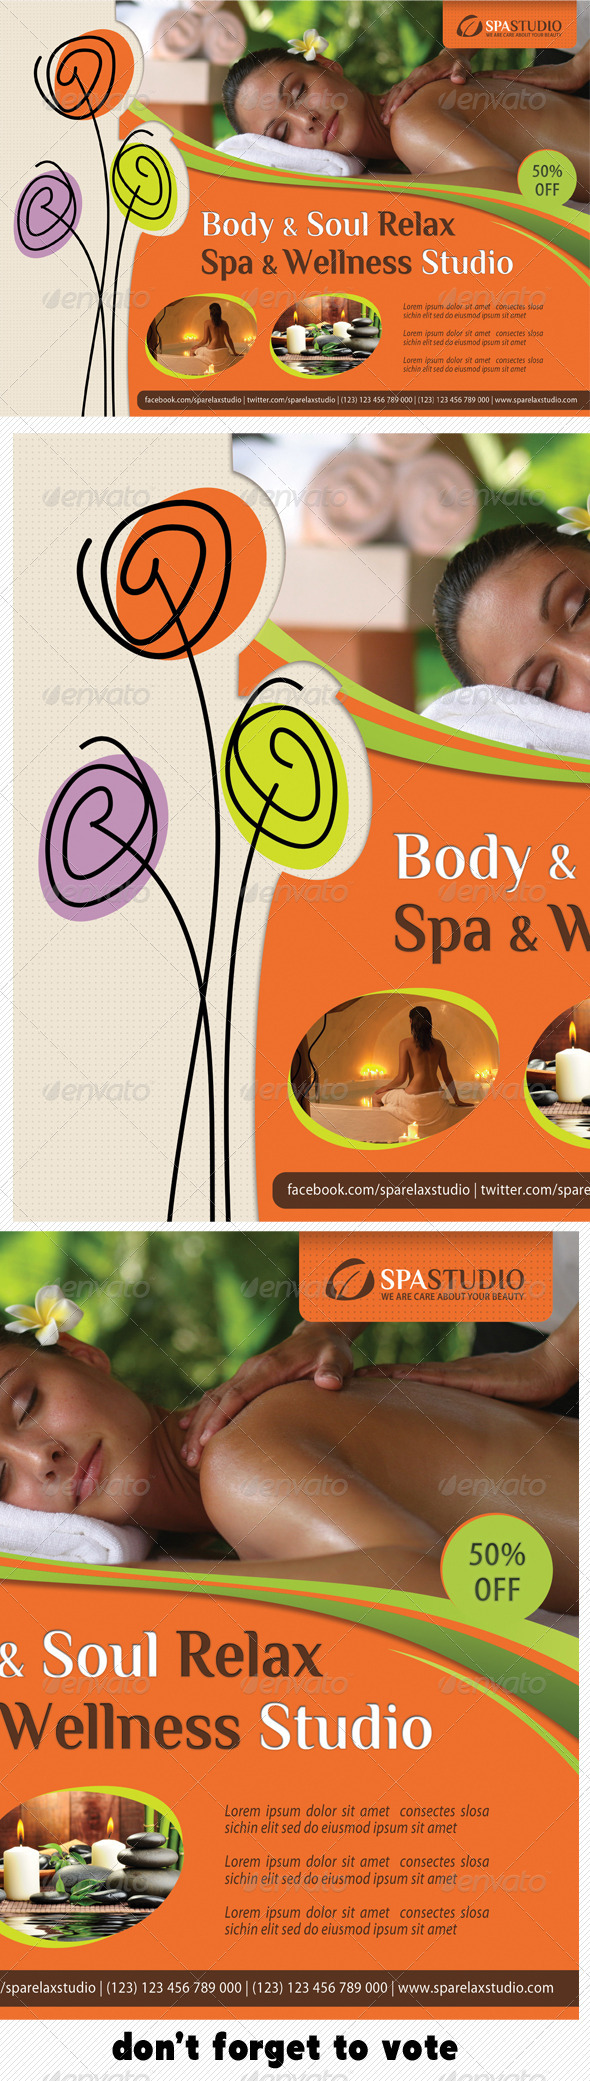 Spa Studio Flyer 08 - Corporate Flyers